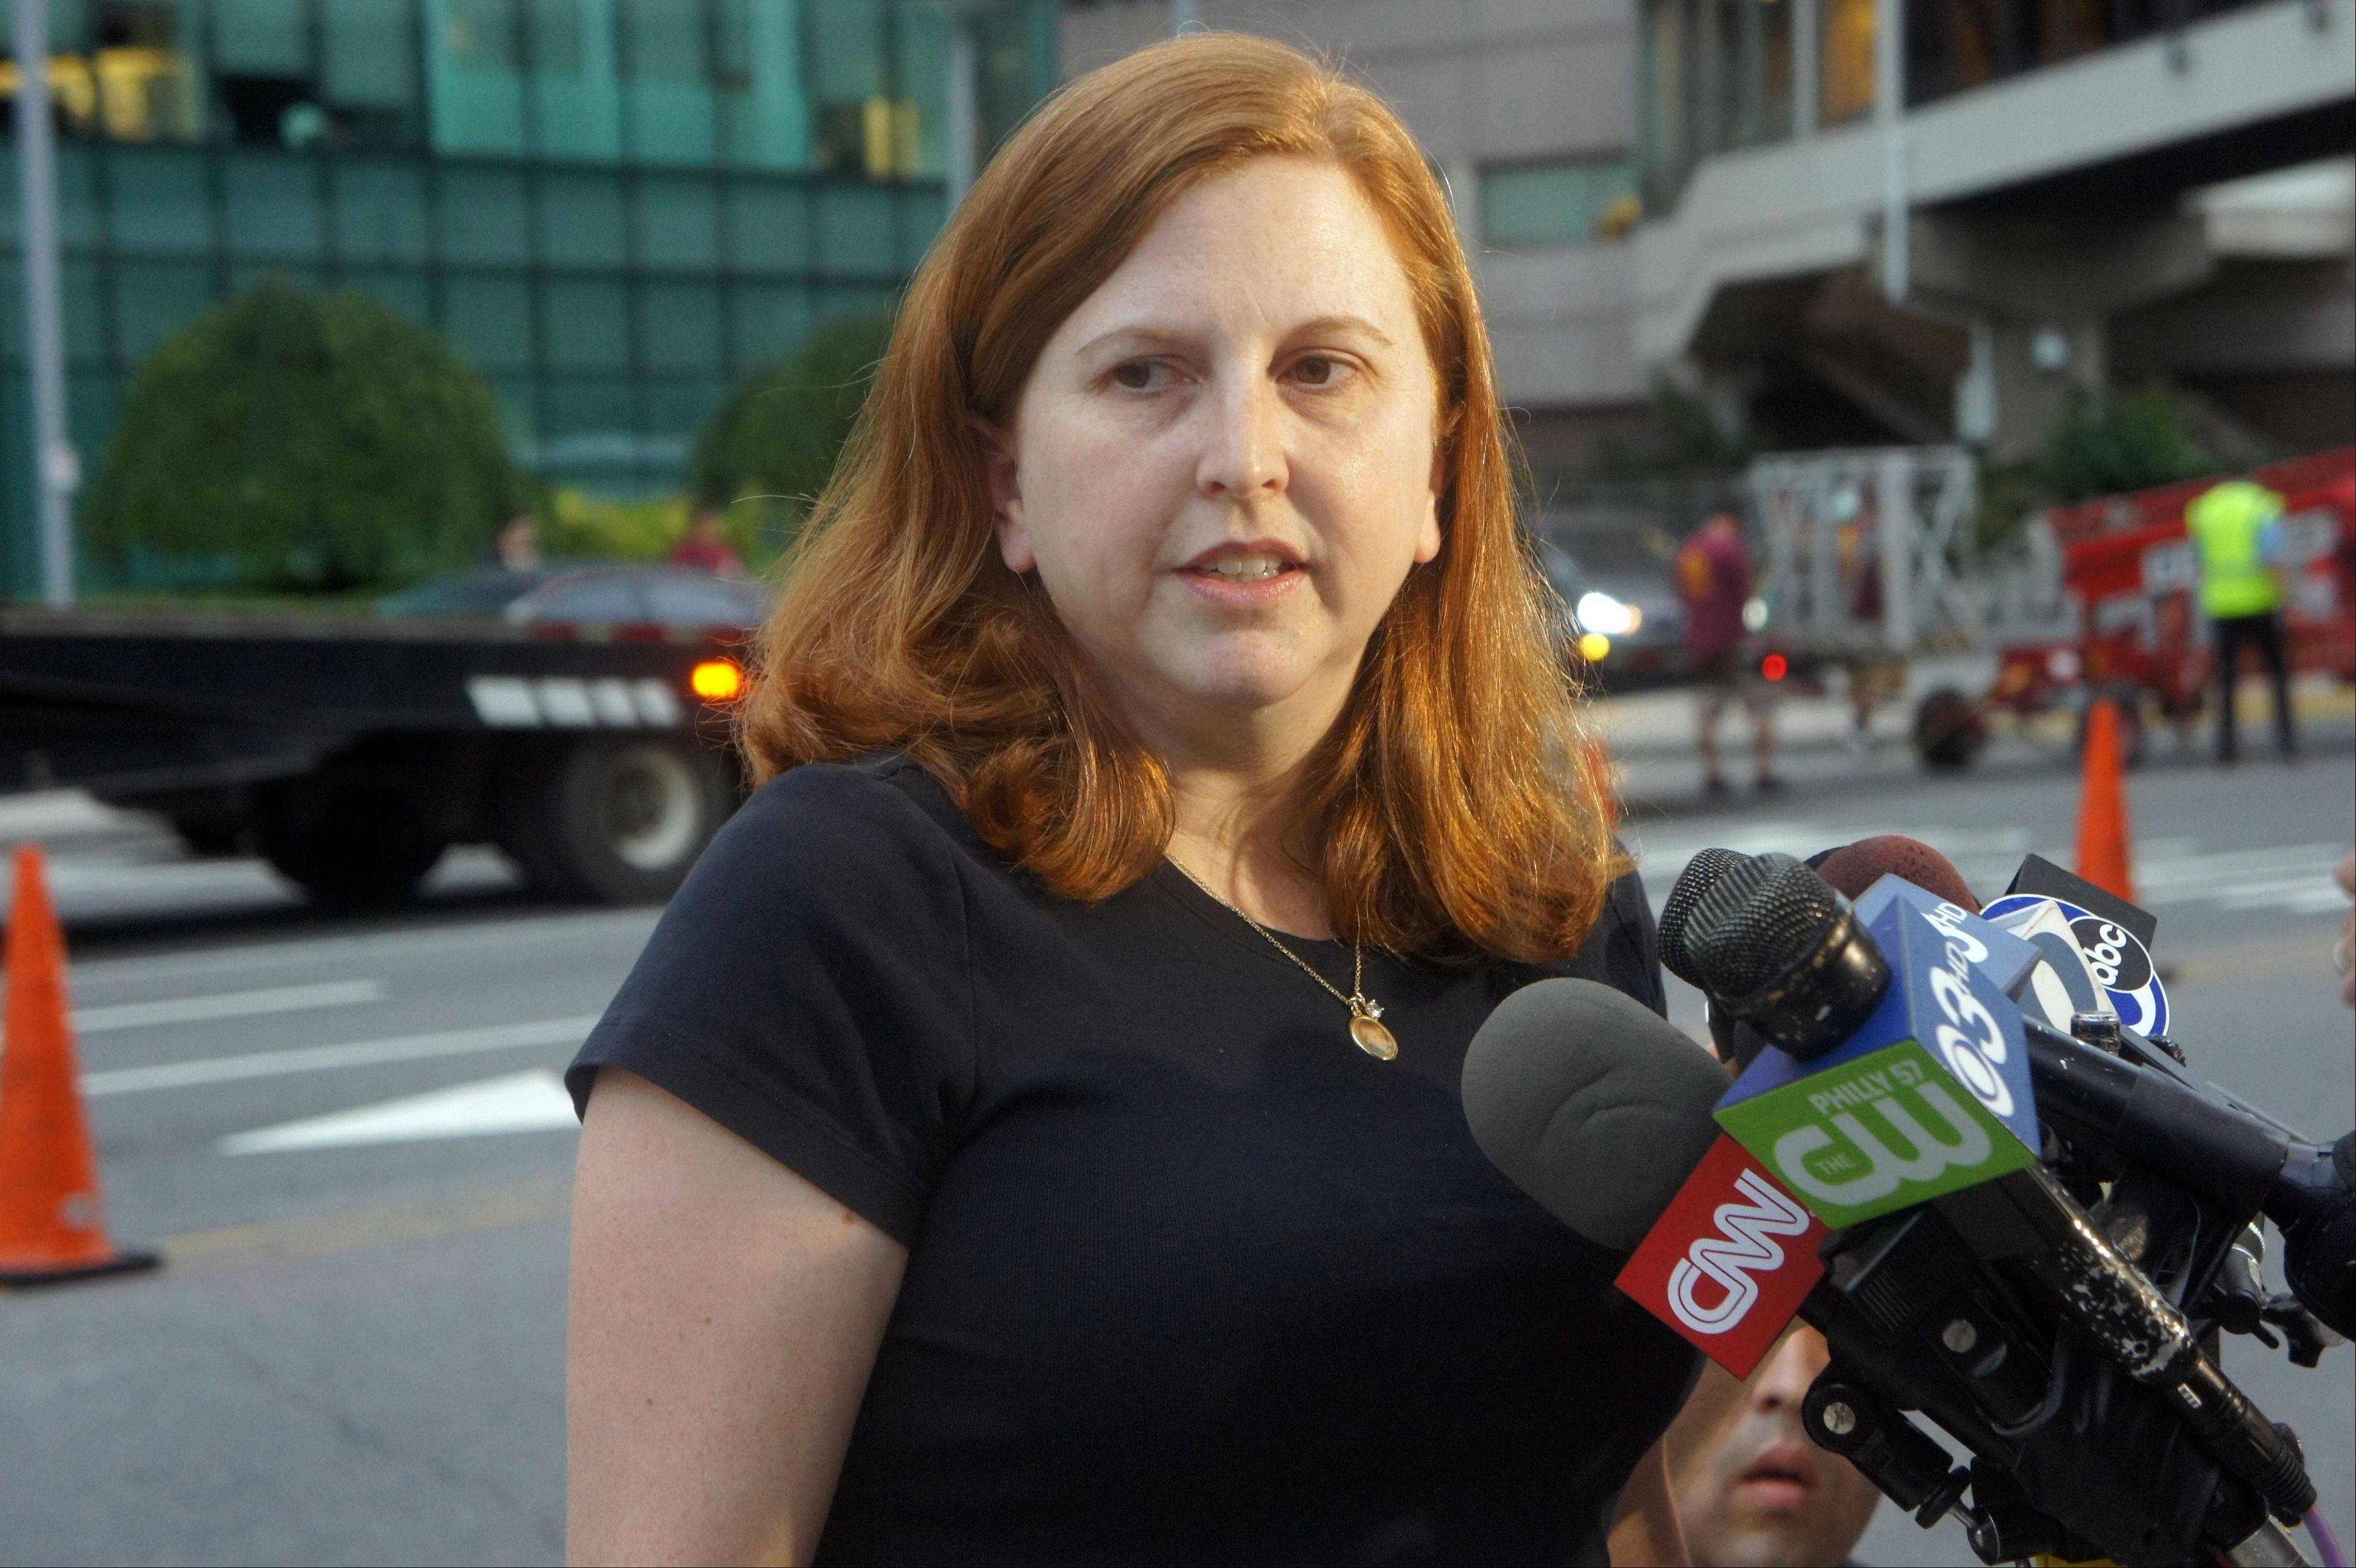 Sharon Ruddock, the aunt of Sarah Murnaghan, talks to reporters outside the Children's Hospital of Philadelphia after the 10-year-old underwent a six-hour double-lung transplant as a result of her severe cystic fibrosis, Wednesday, June 12, 2013. Ruddock said her niece never would have received the transplant without a judge's ruling that made her eligible for adult donor lungs.